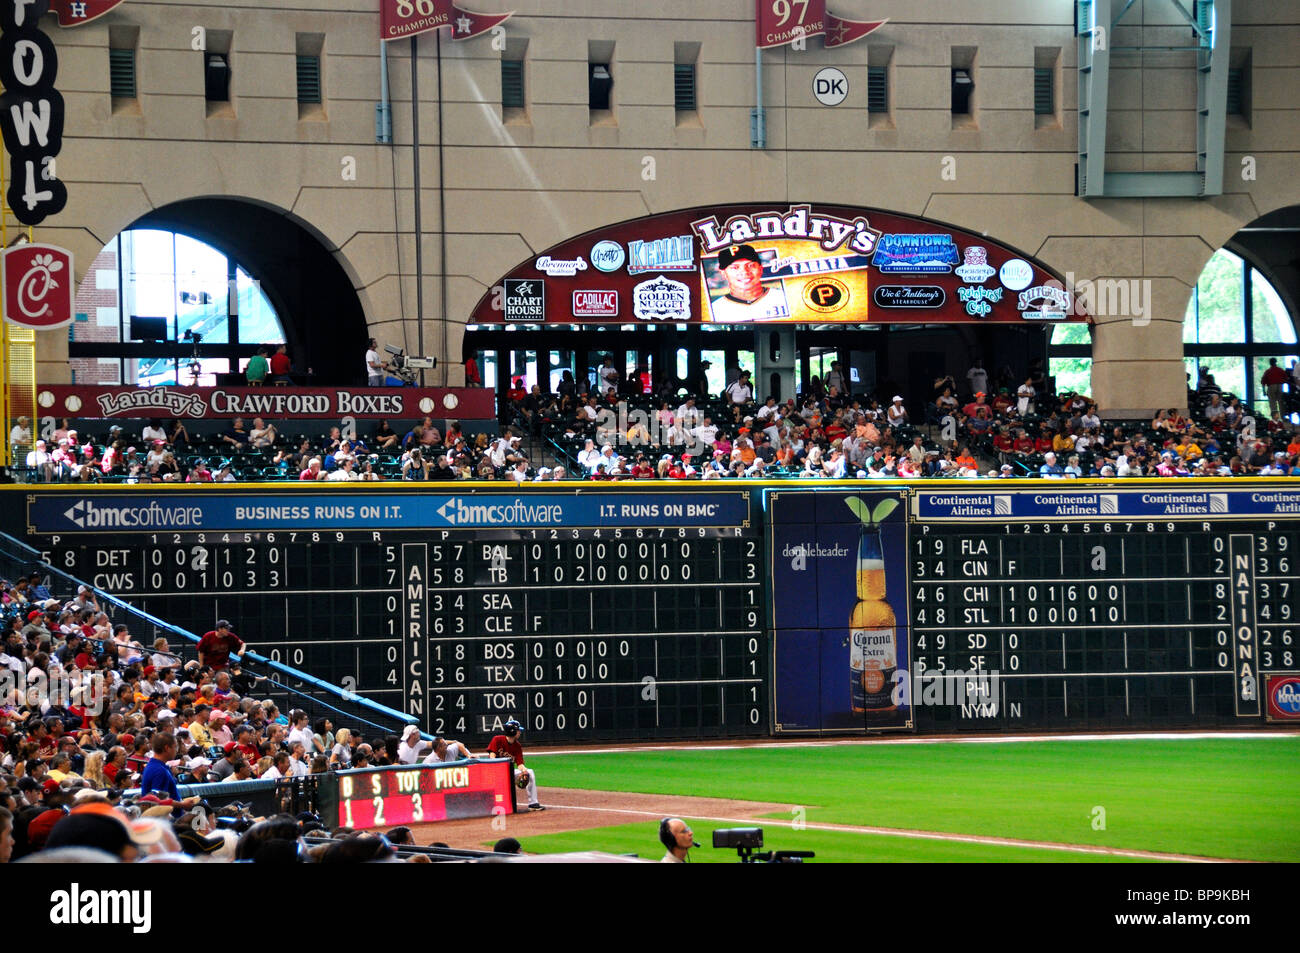 The crawford box at the minute maid park houston texas for The crawford